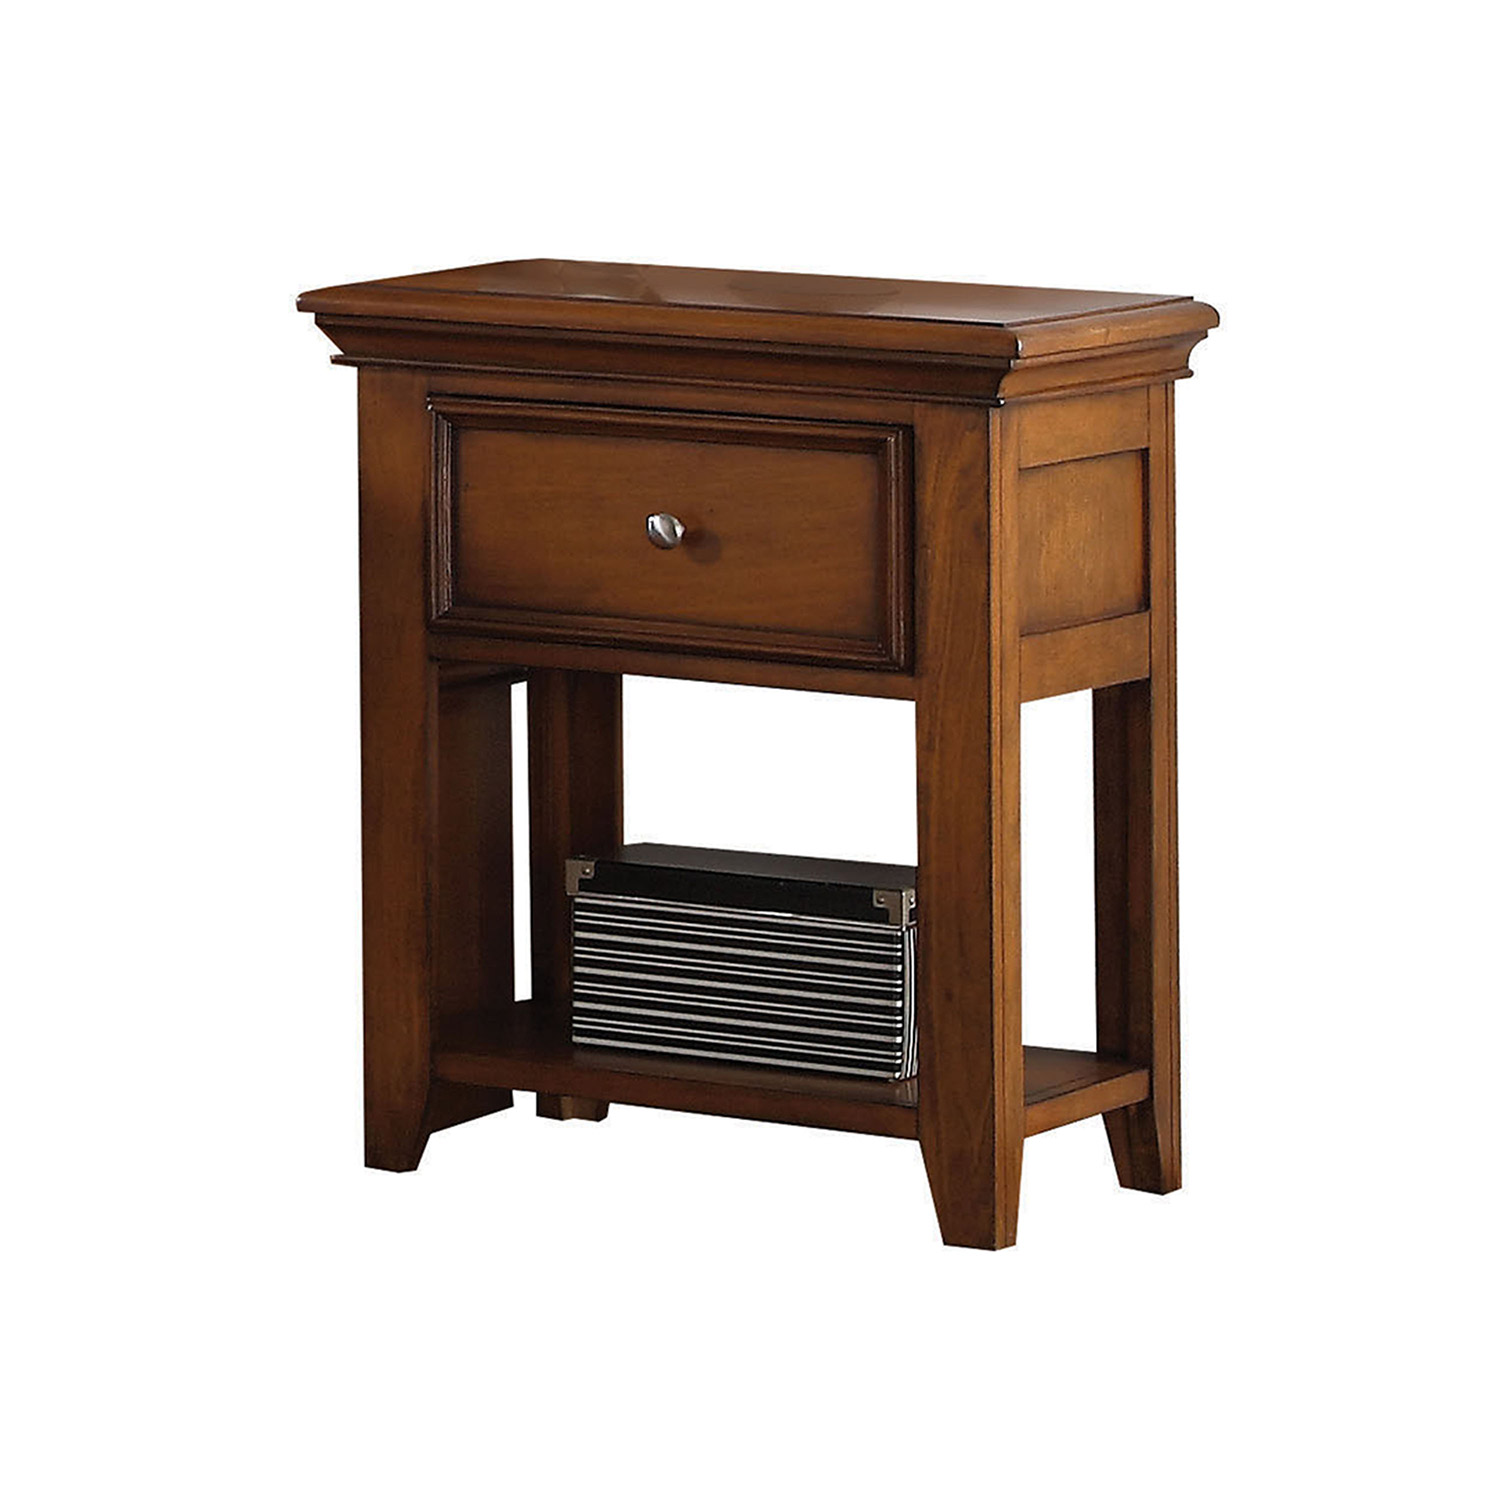 Acme Lacey Nightstand - Cherry Oak